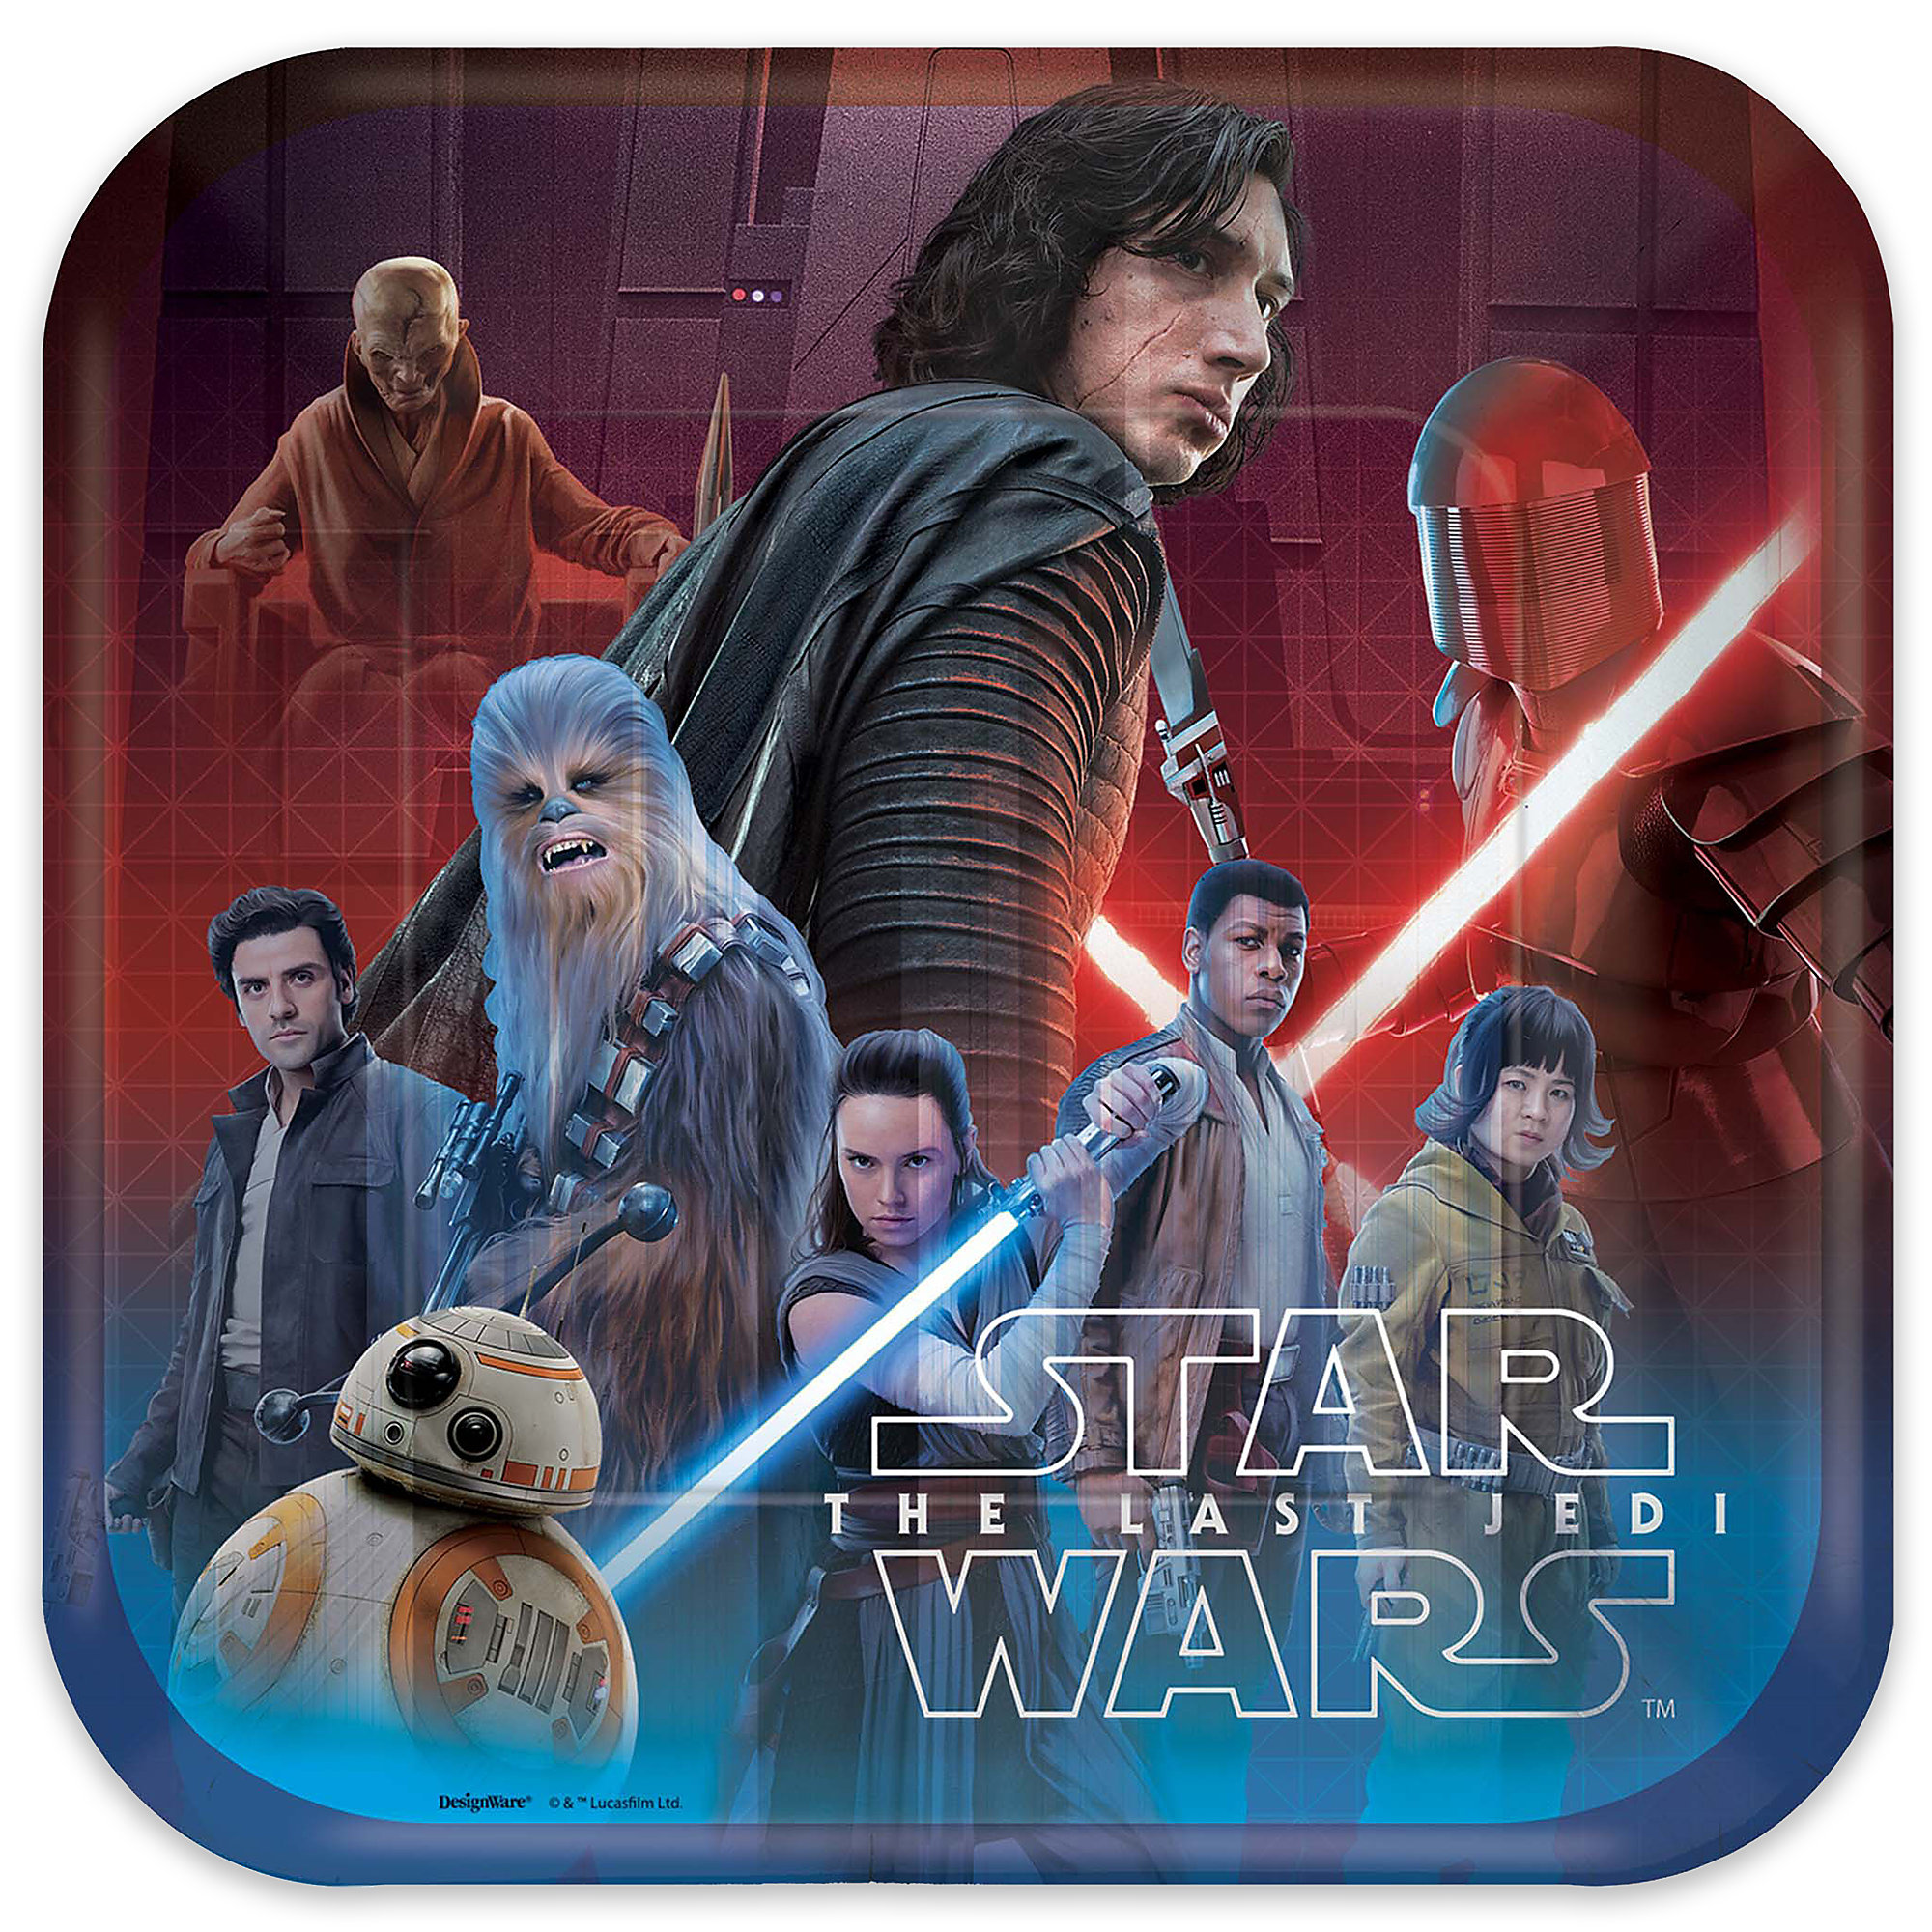 Star Wars: The Last Jedi Lunch Paper Plates